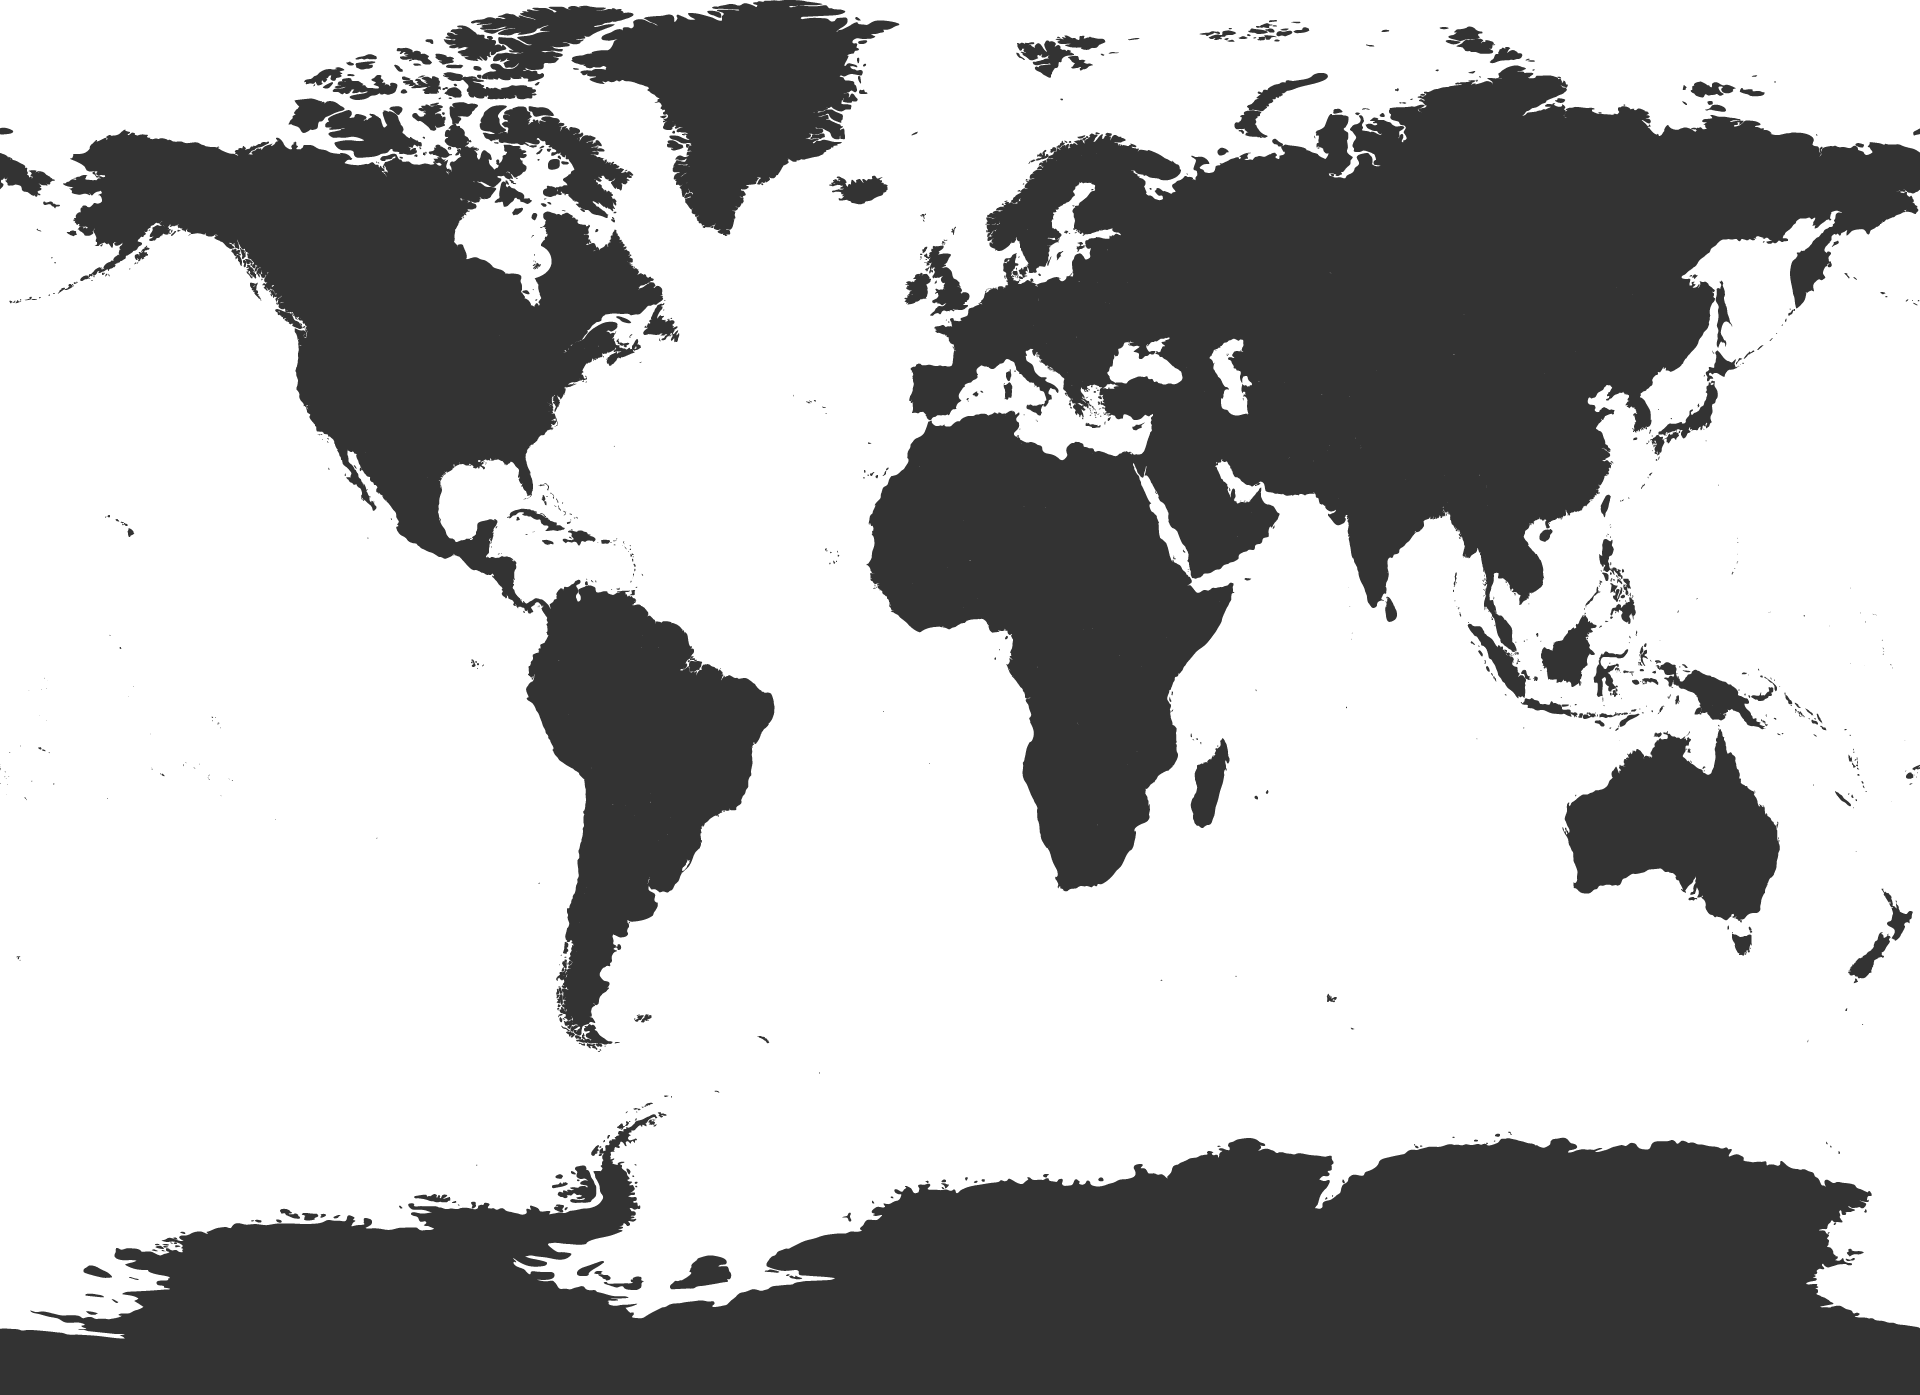 Png map black and white transparent map black and whiteg images sample data map png map black and white gumiabroncs Gallery